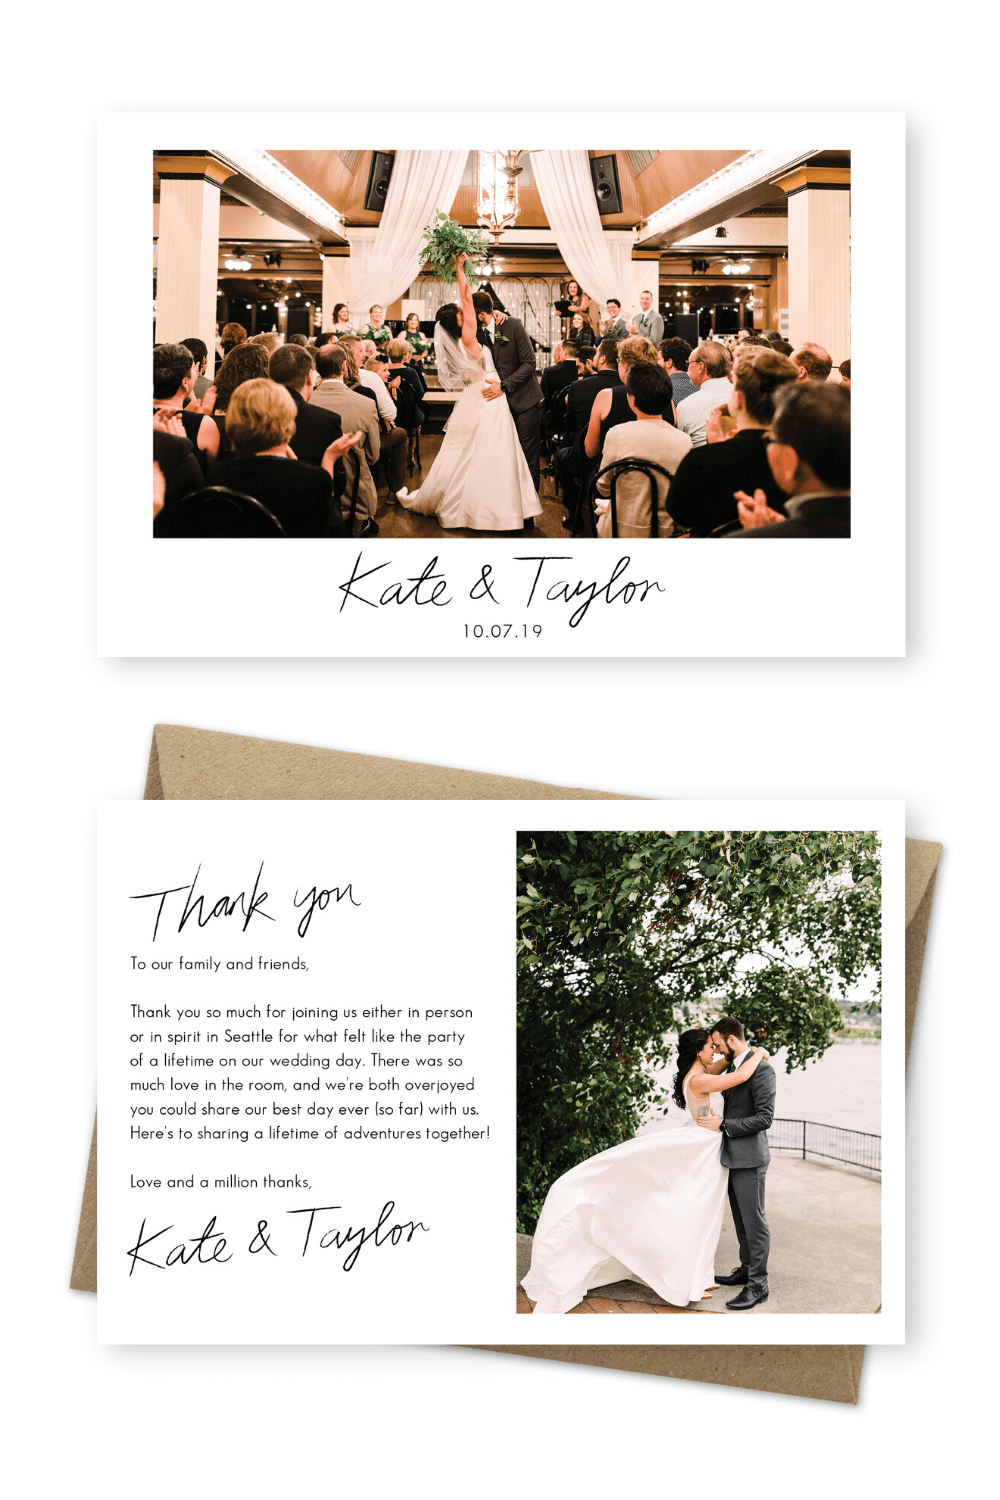 Wedding Thank You Messages From Bride And Groom What To Write In A Wedding Thank You Card For The Love Of Stationery In 2020 Wedding Thank You Messages Wedding